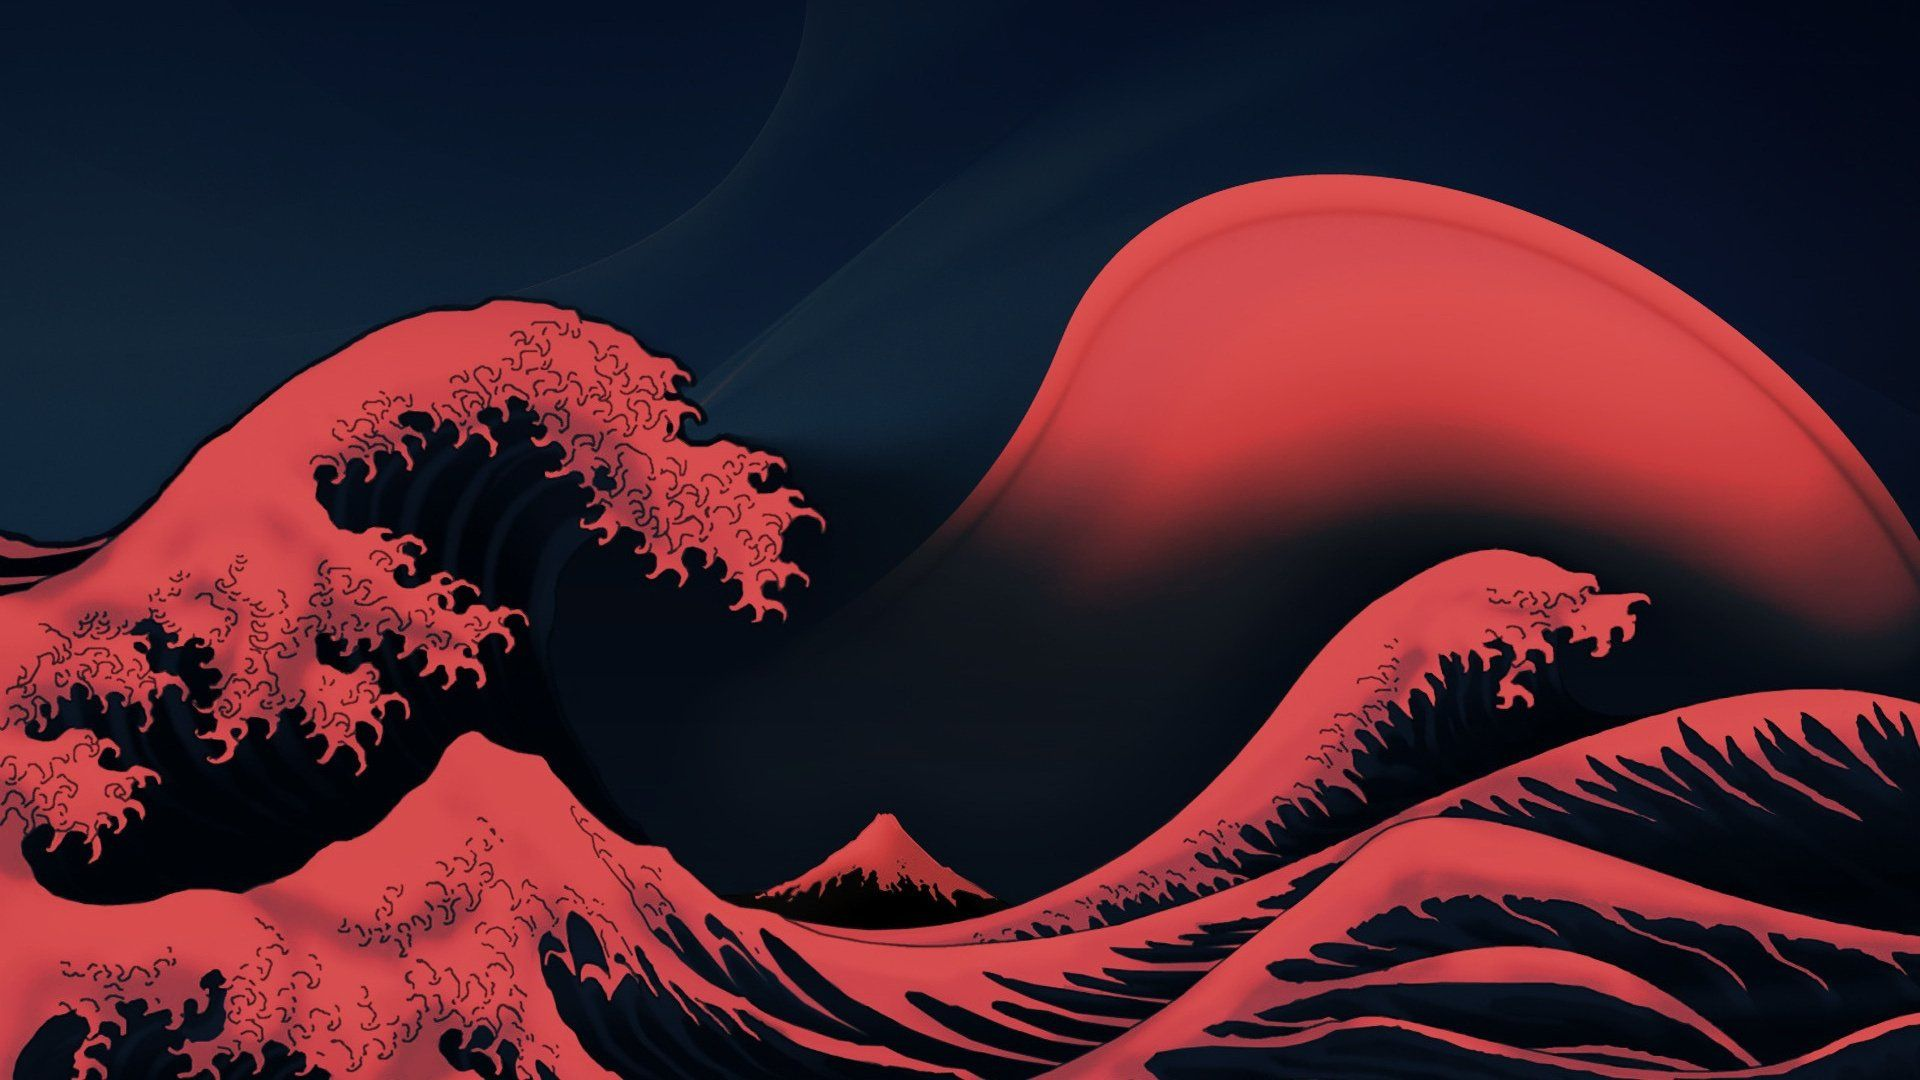 Red Aesthetic 1920x1080 Wallpapers - Wallpaper Cave